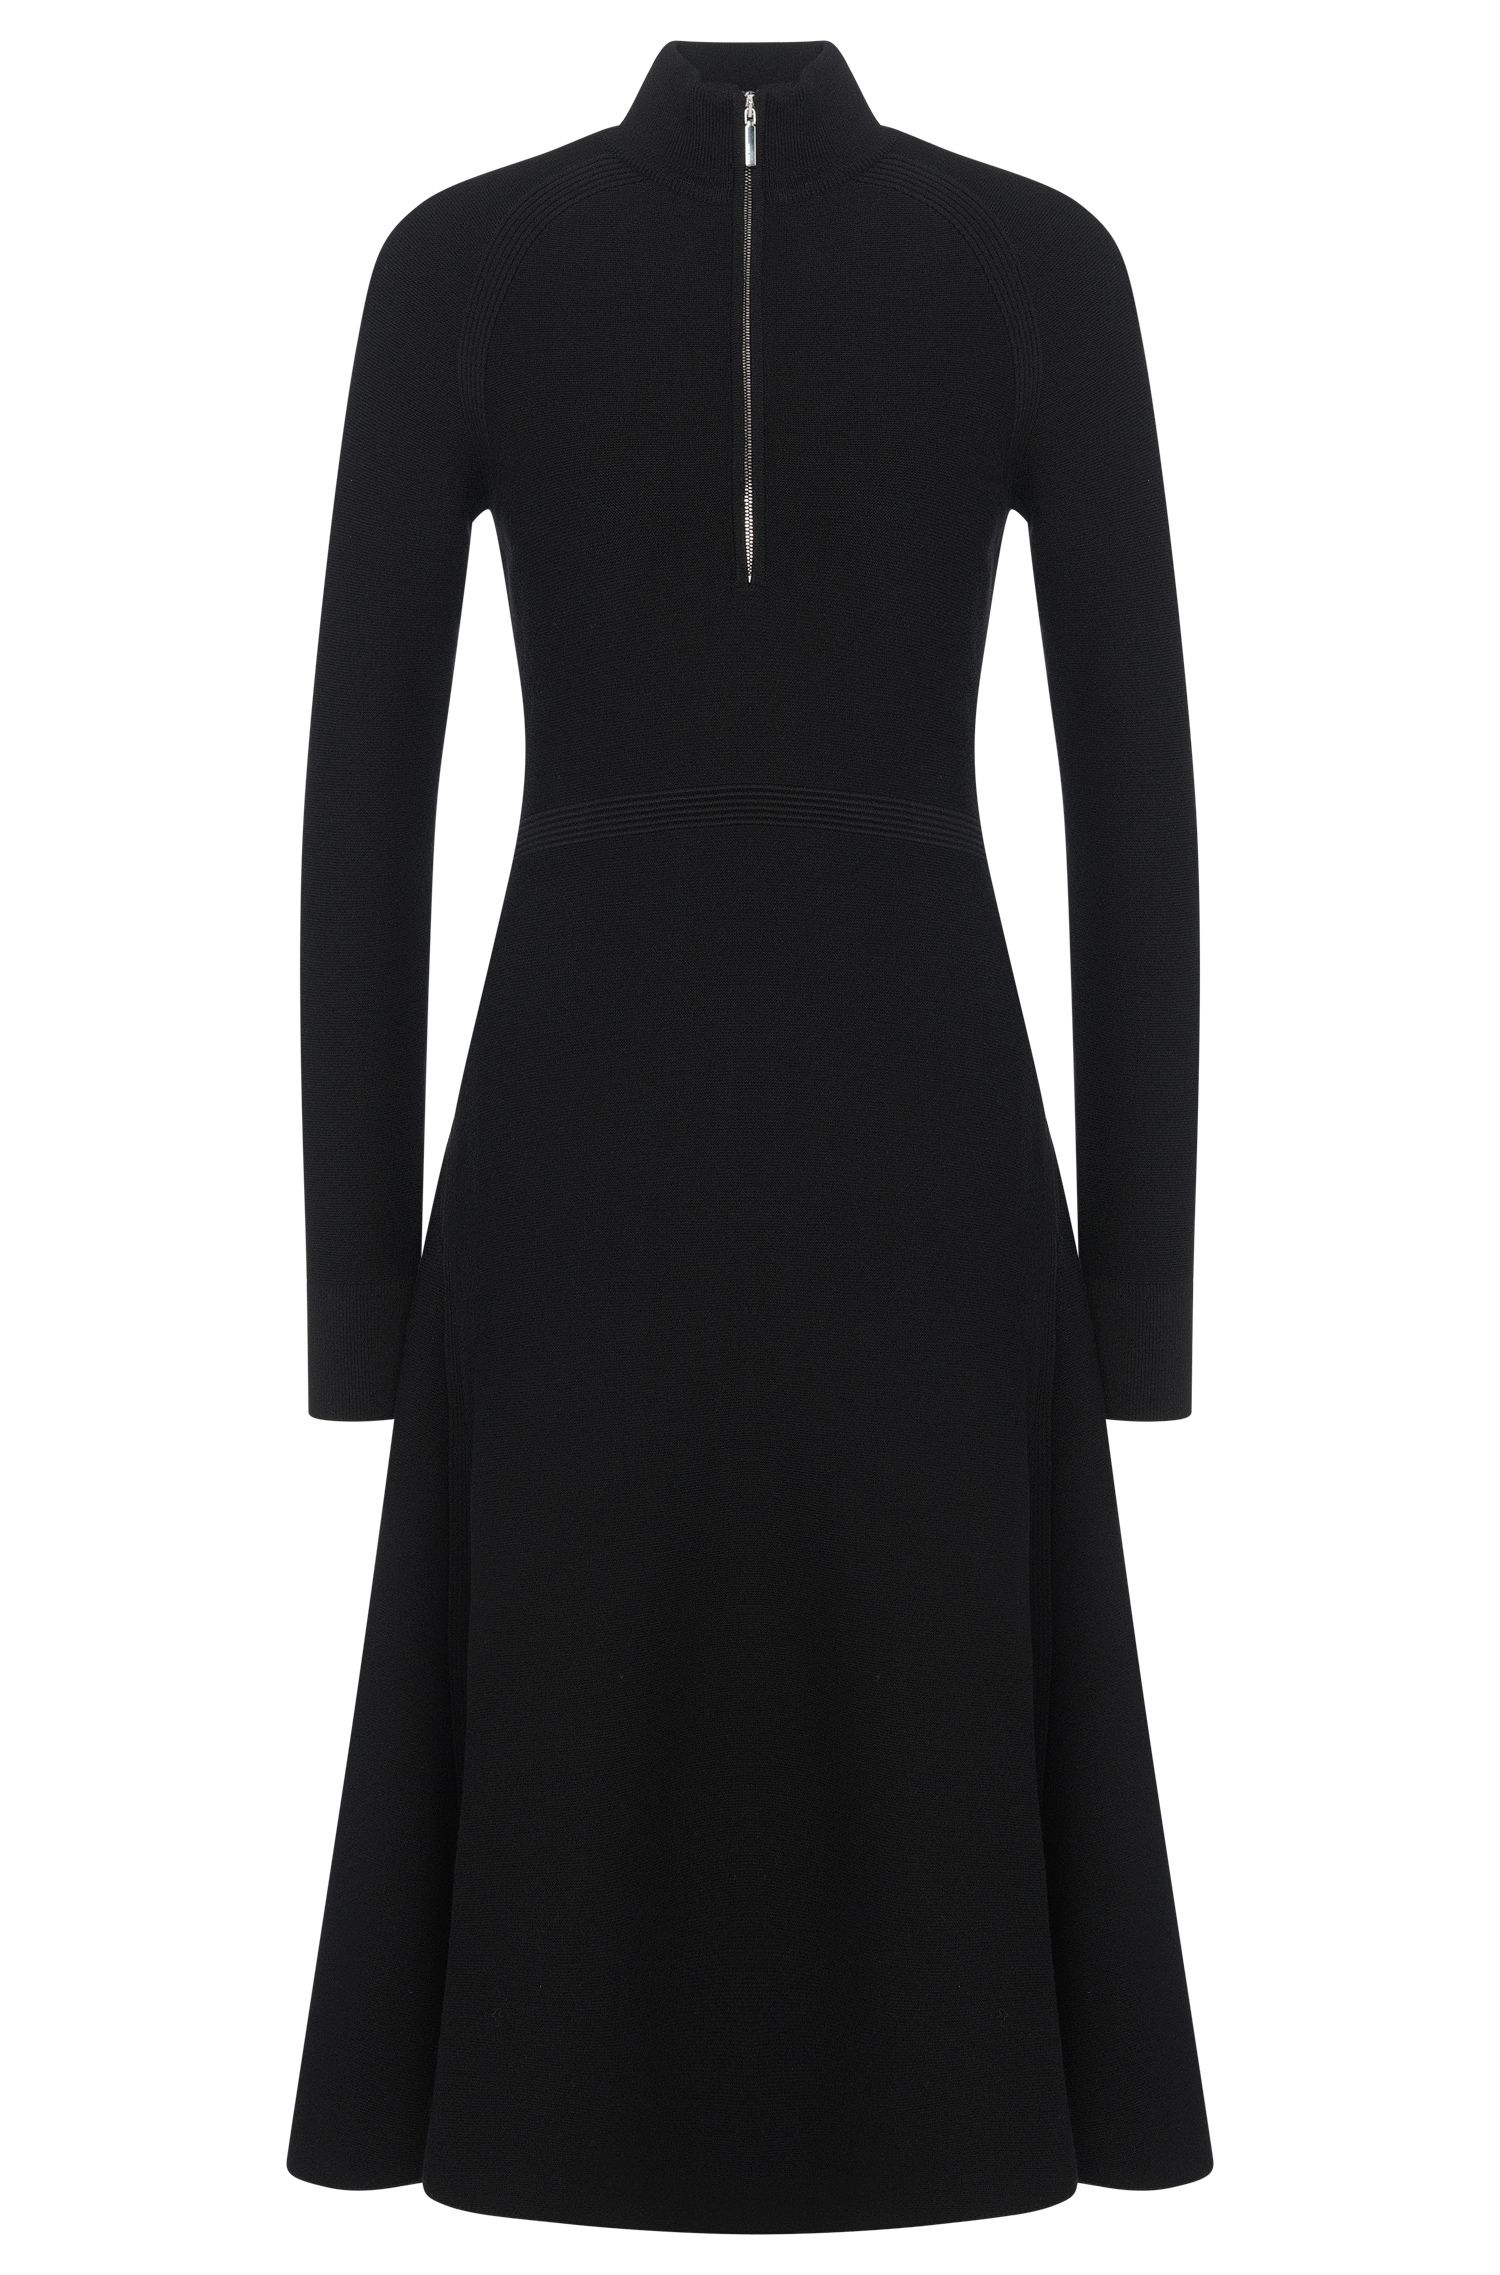 'FS_Finanes' | Viscose Blend A-Line Sweater Dress